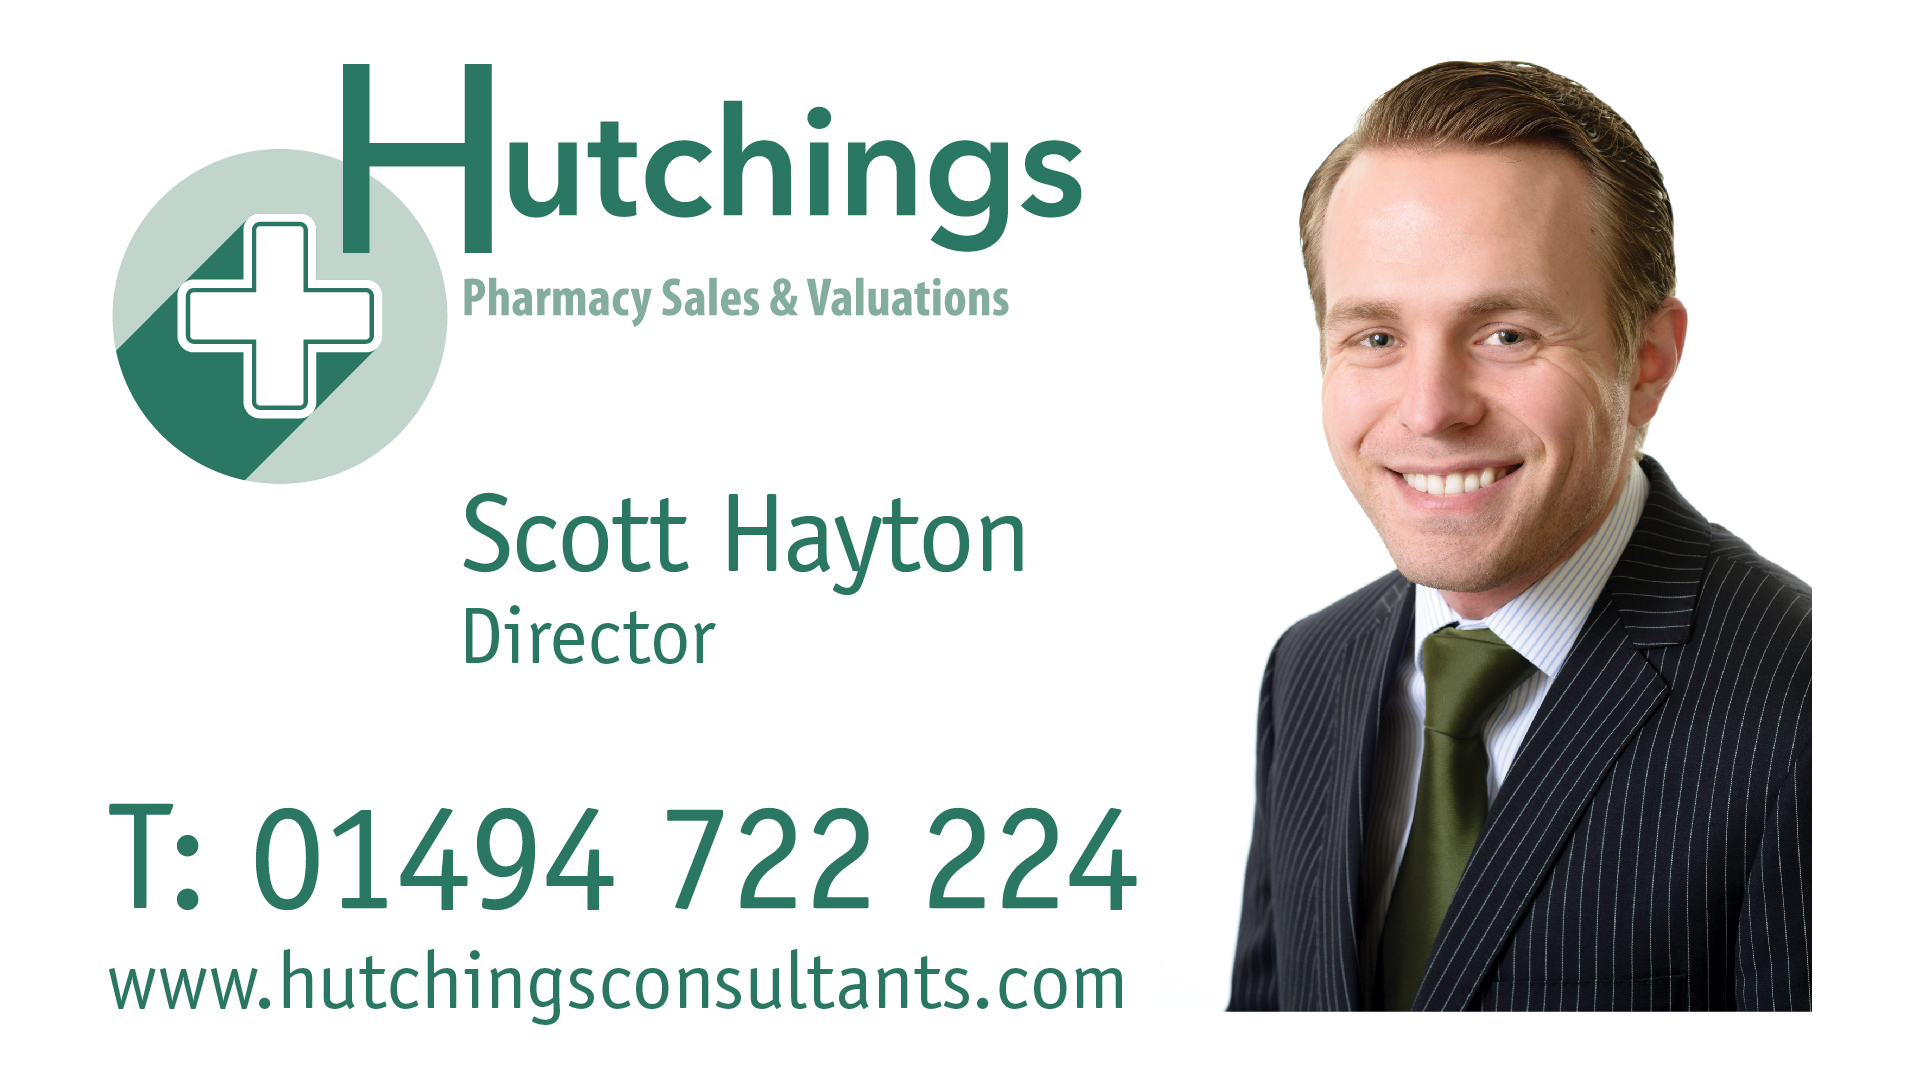 implications of the funding cuts hutchings pharmacy s implications of the funding cuts hutchings pharmacy s valuations